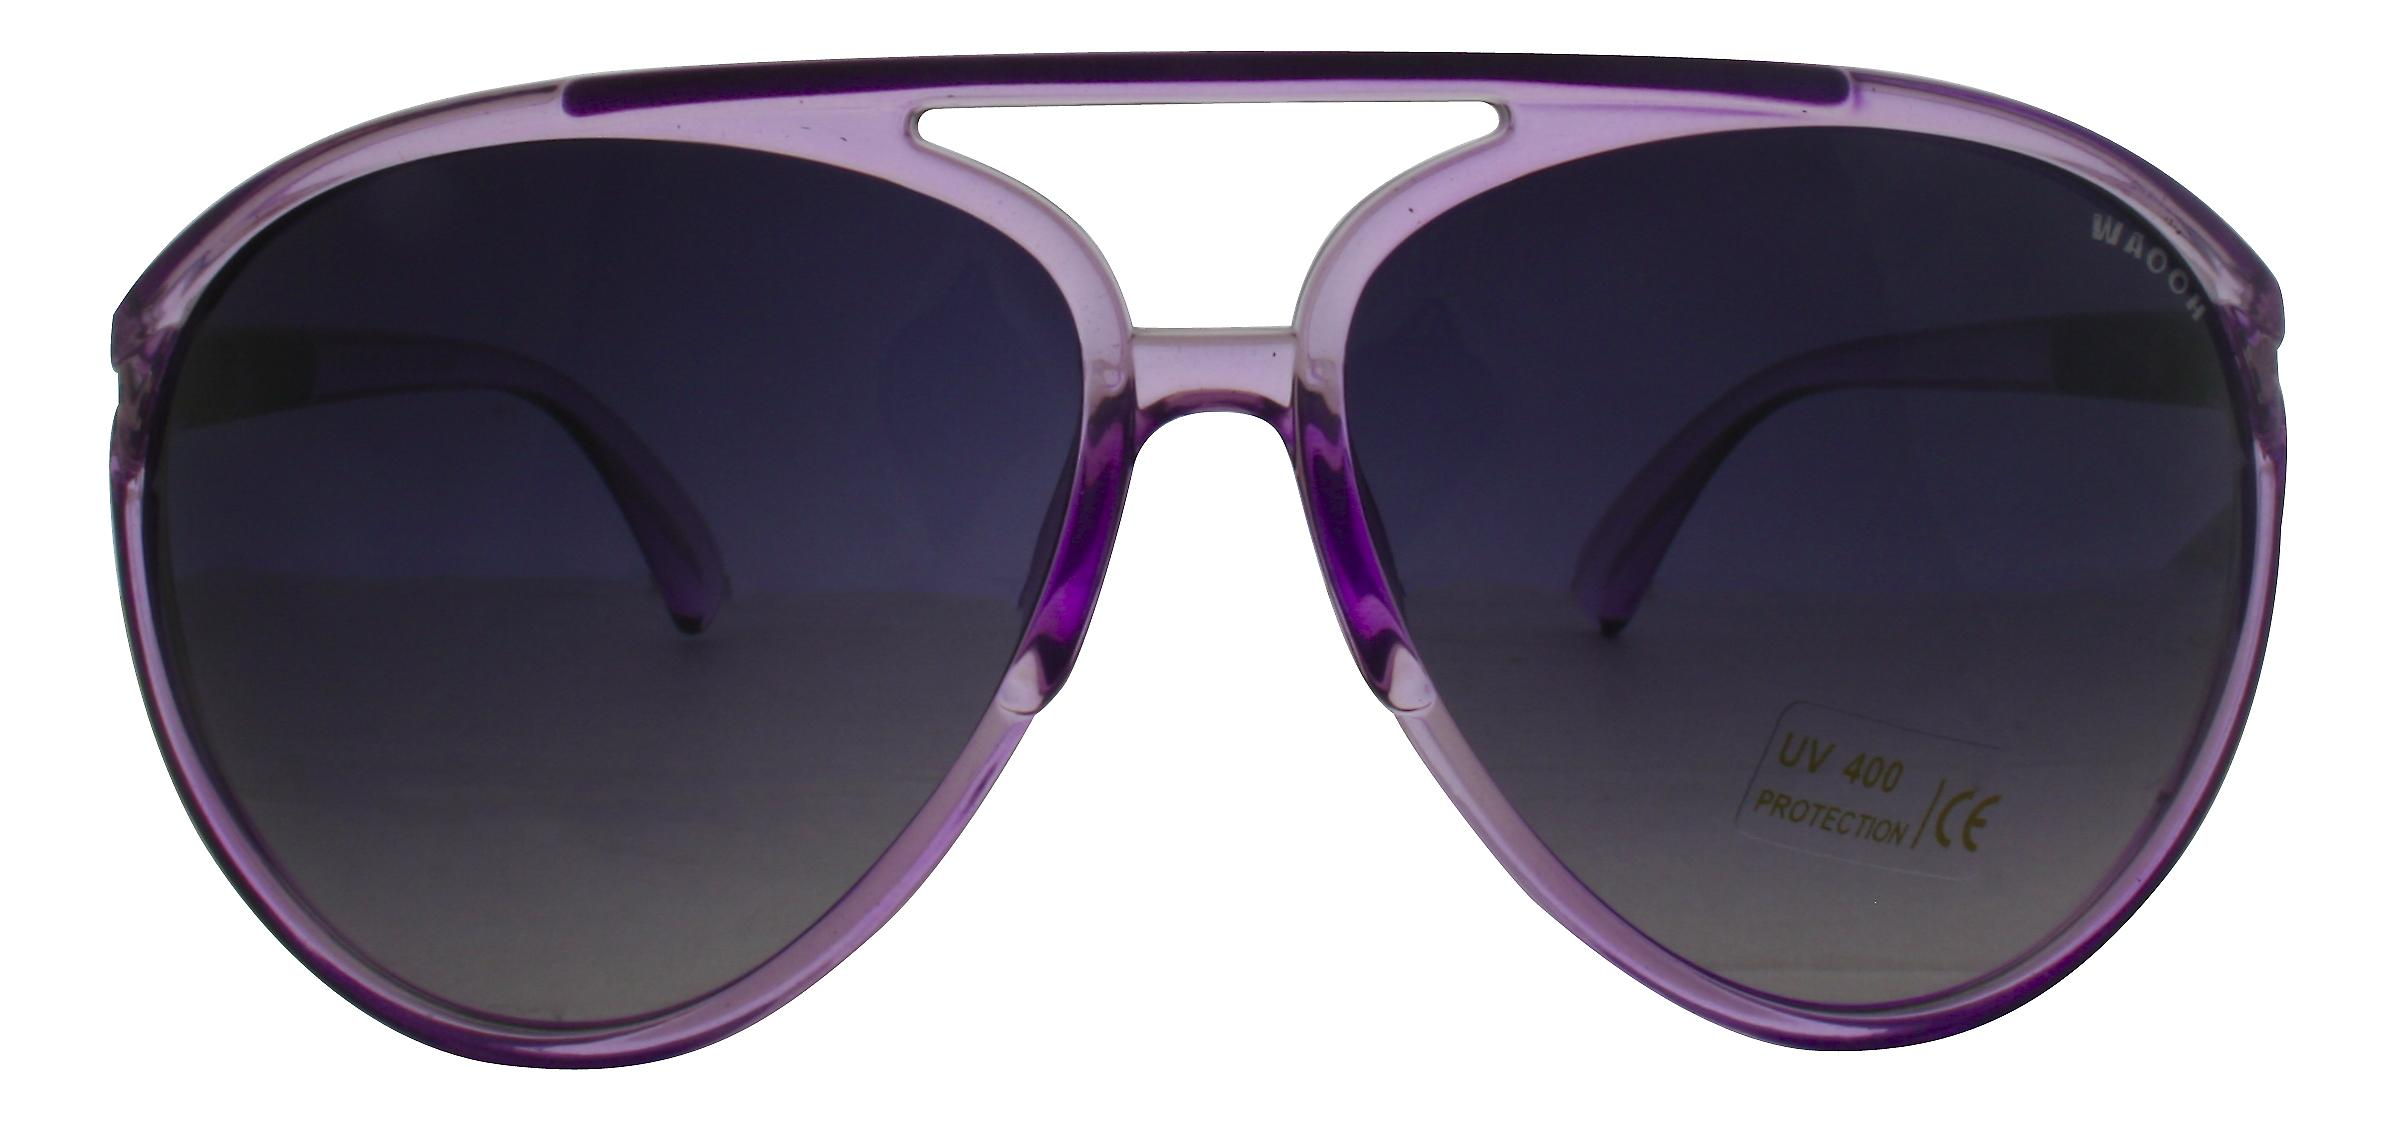 Waooh - Sunglasses 633-8015 - Mount Color Protection UV400 Category 3 - Sunglasses